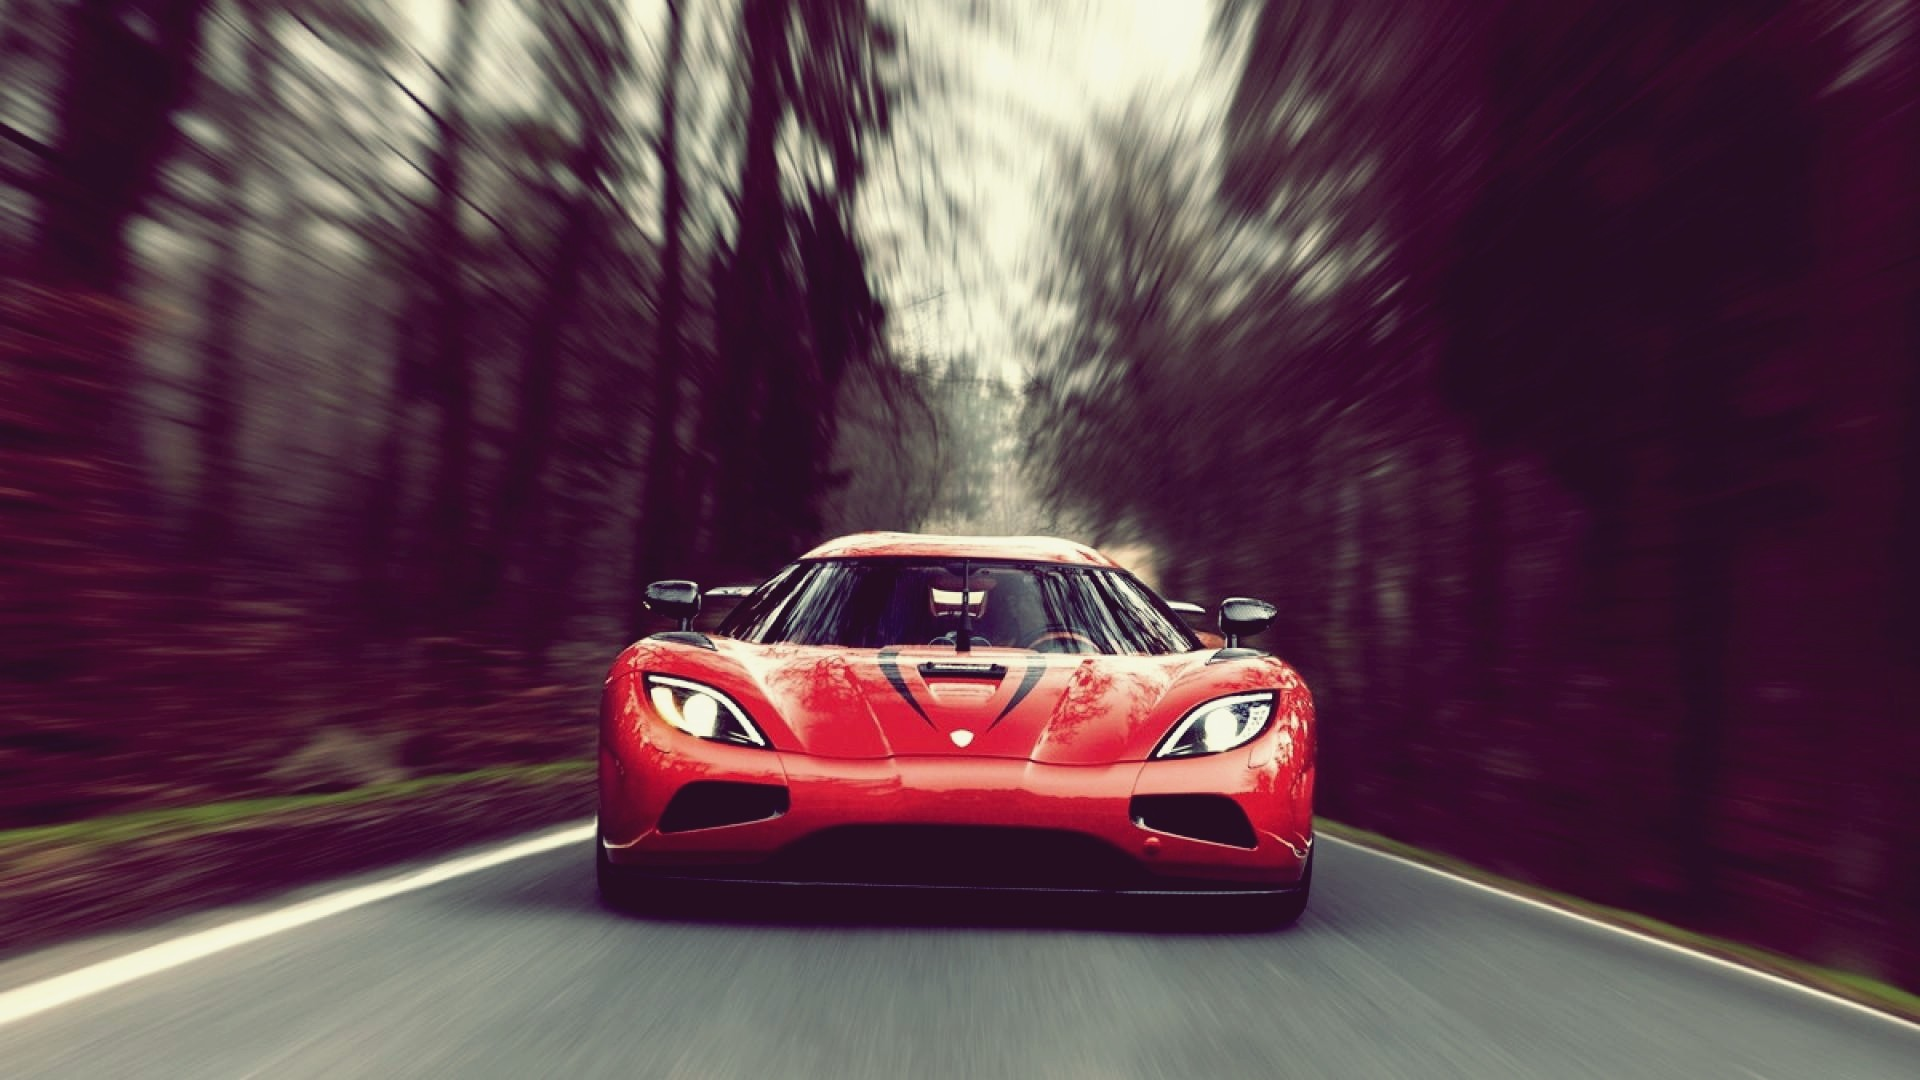 Vintage Car Hd Wallpapers For Pc Car Motion Blur Koenigsegg Agera R Koenigsegg Red Cars